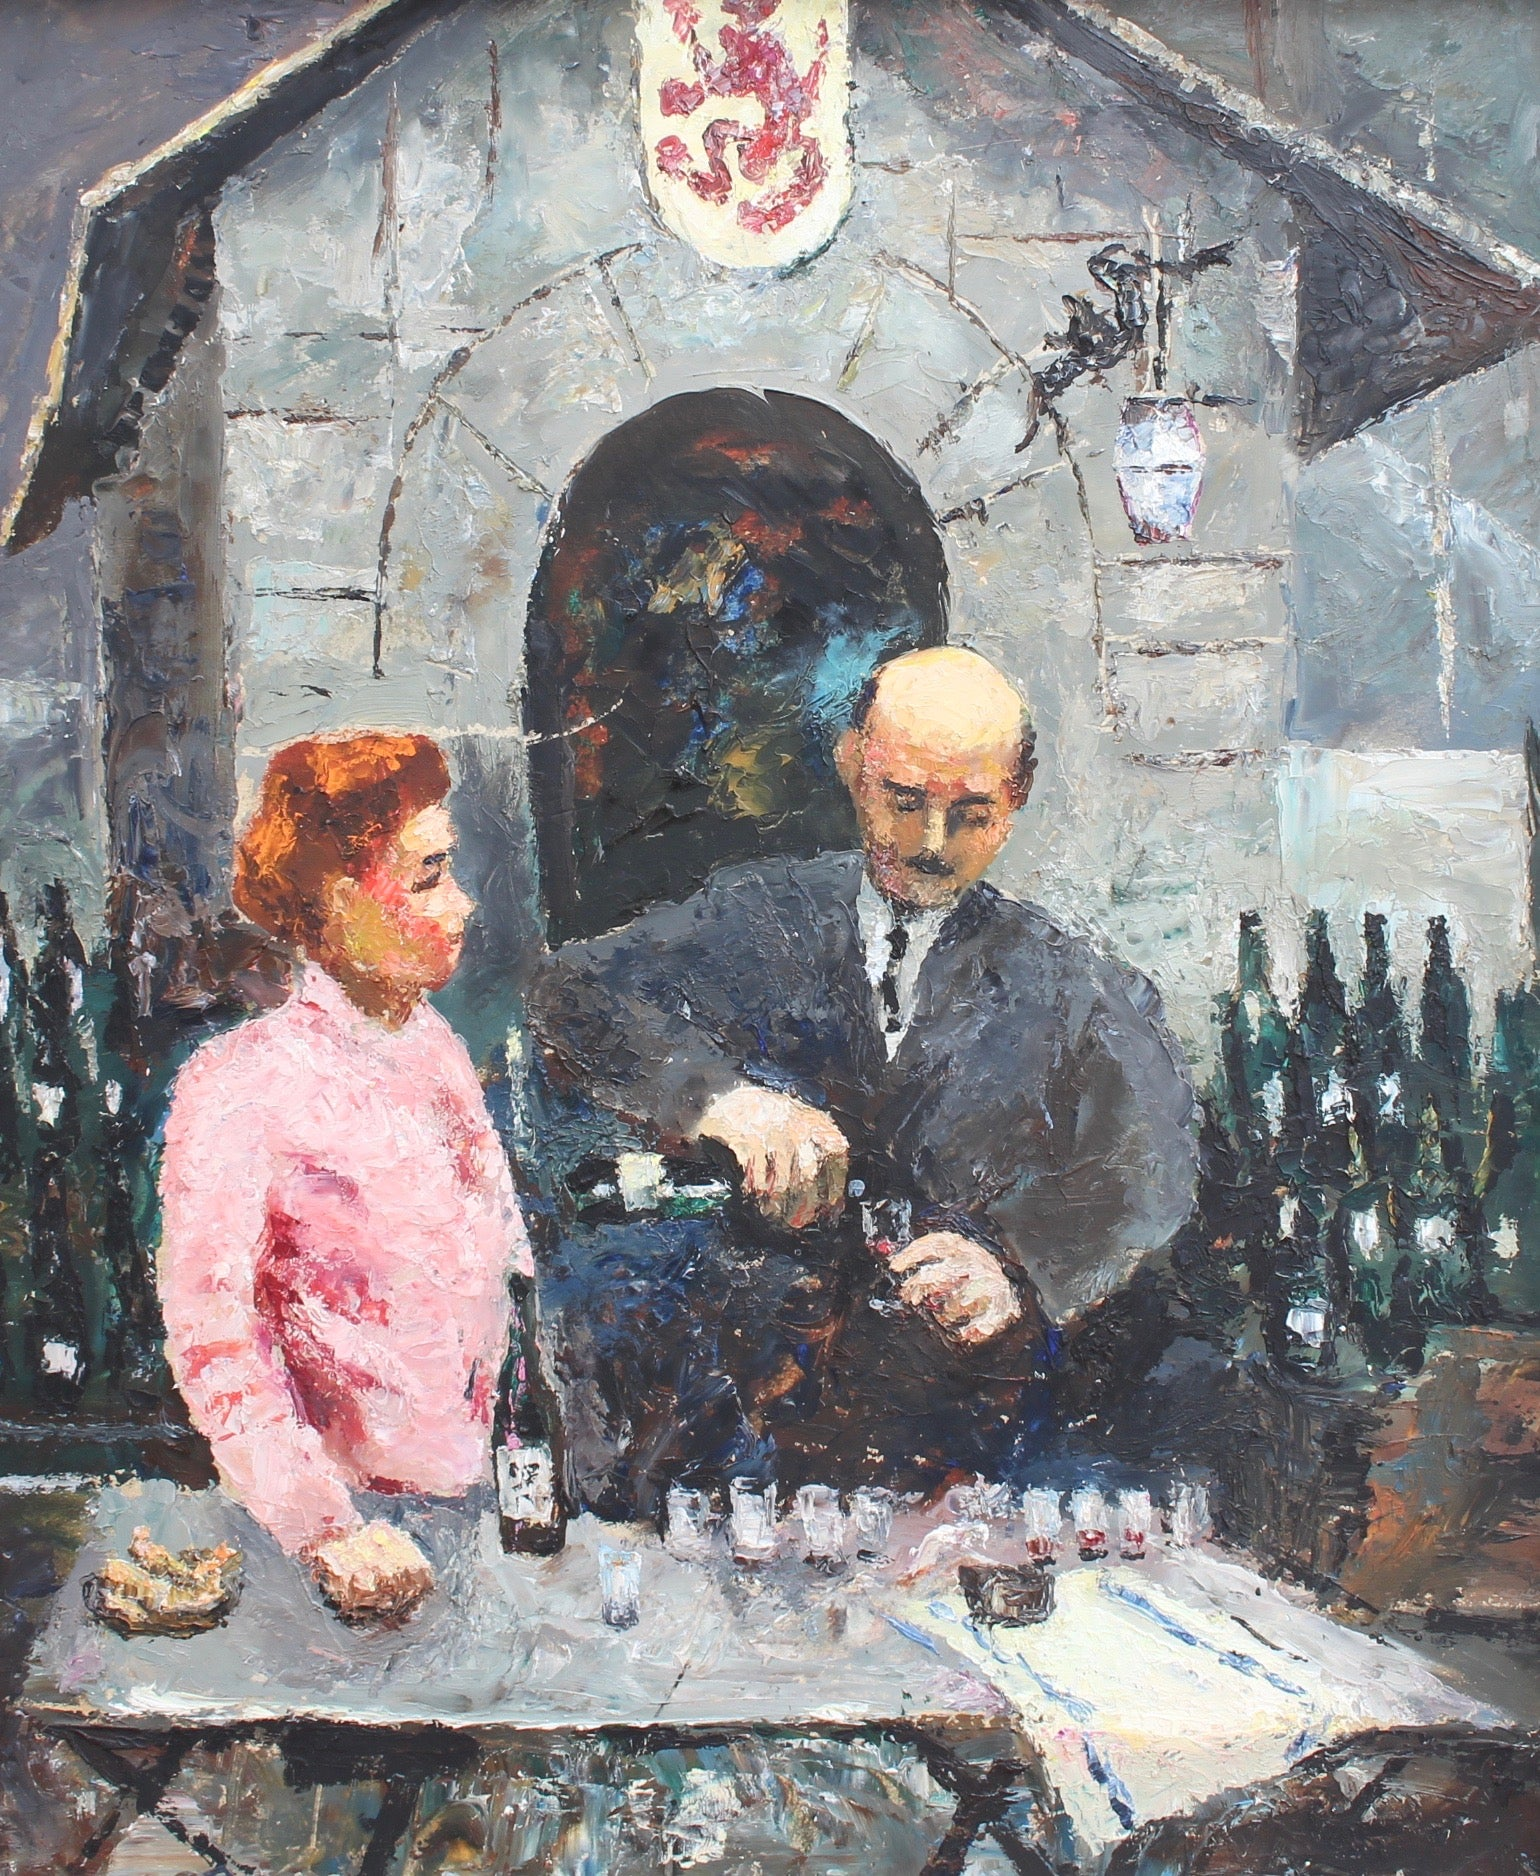 'The Wines of Bergerac at the Paris Fair' by Germaine Nordmann (circa 1960s)